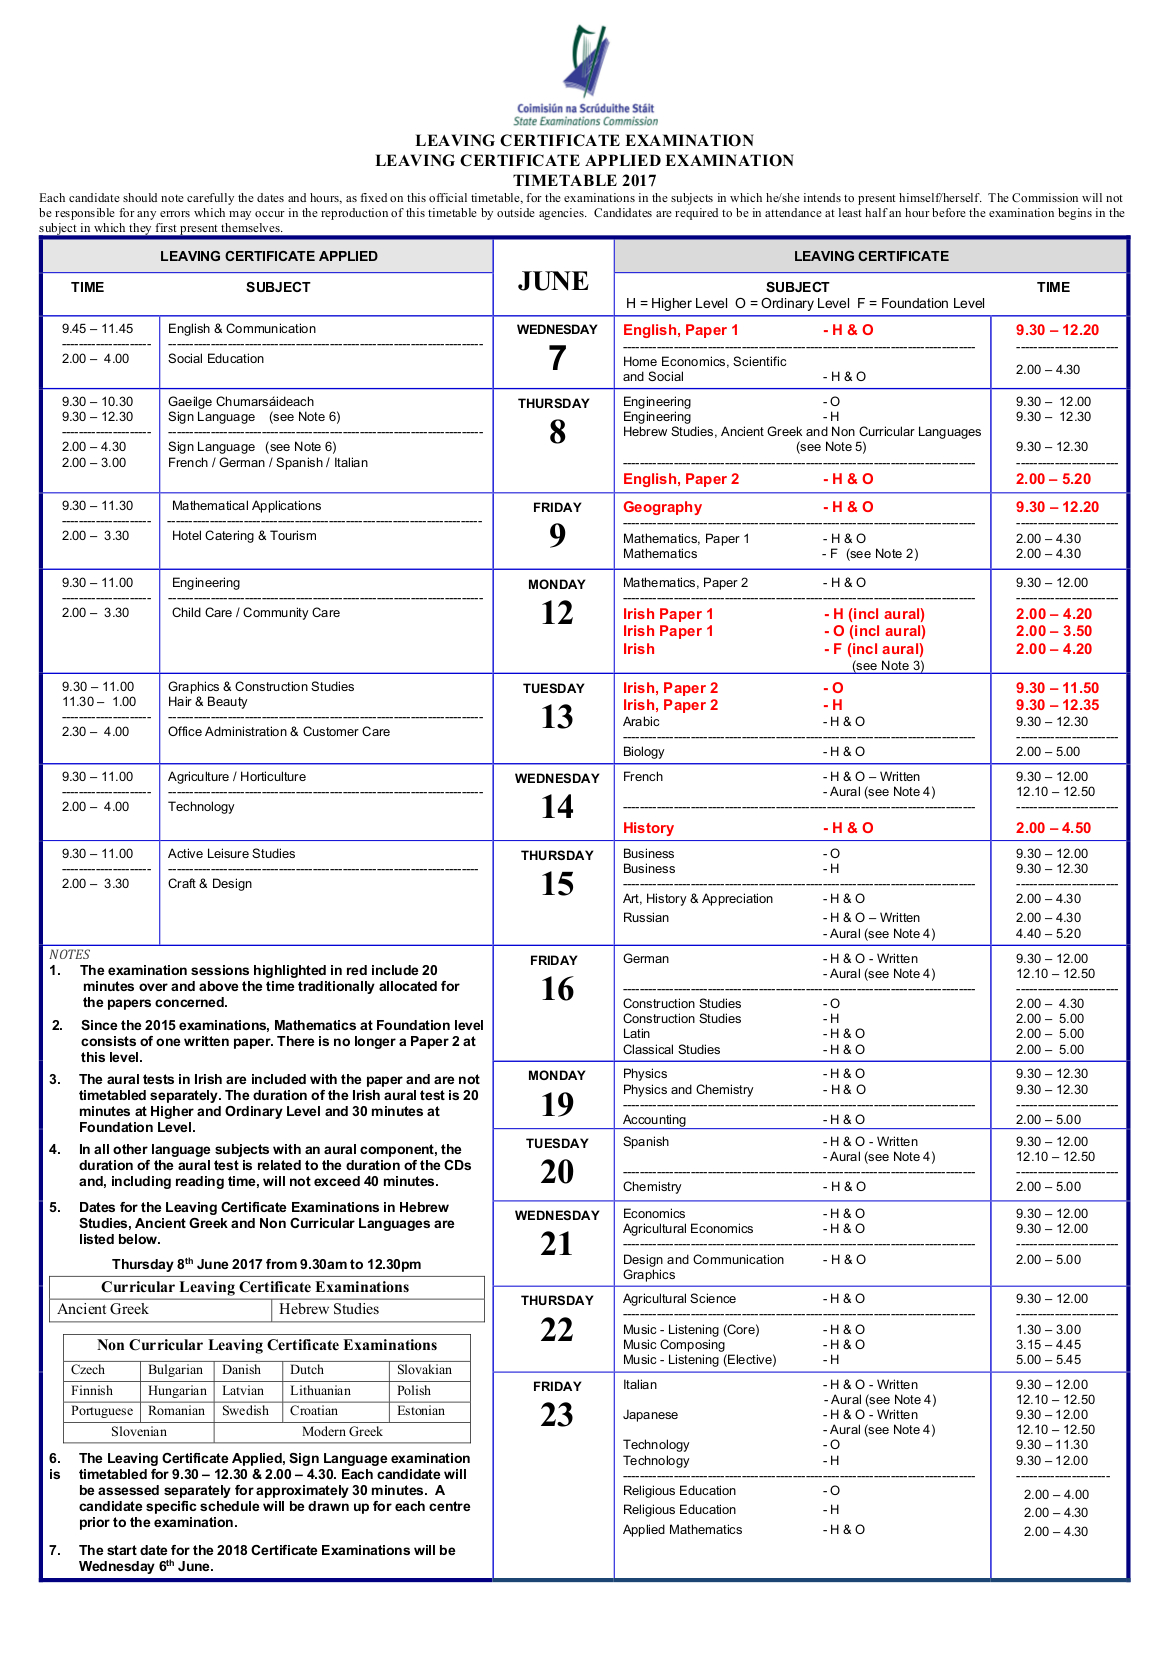 Examination exam schedule in 2017 39